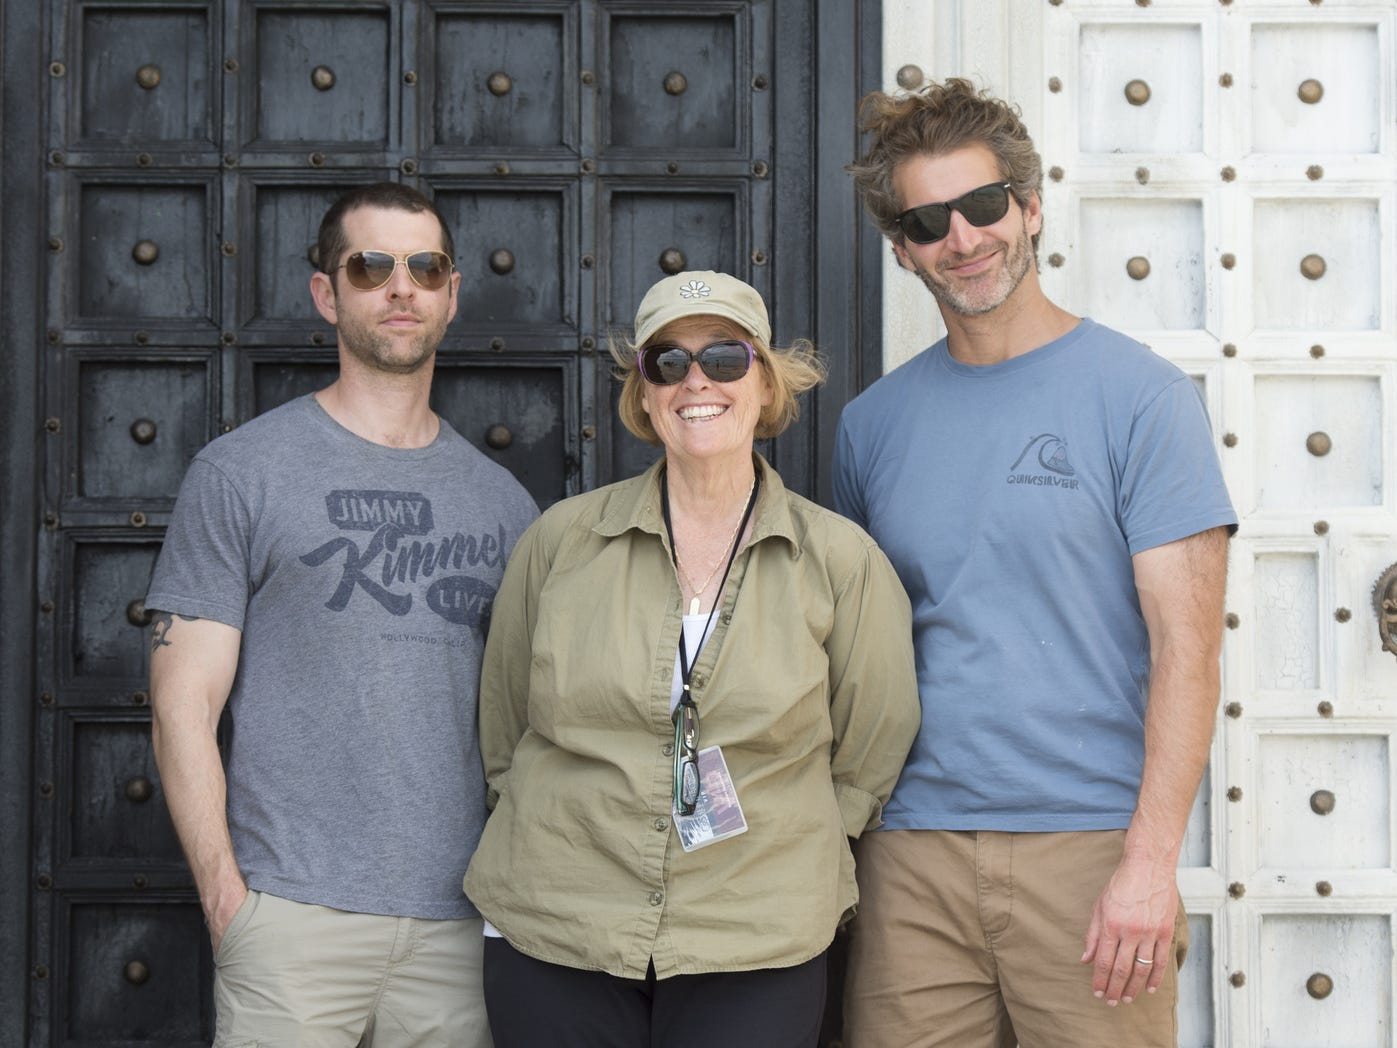 Bernie Caulfield, center, stands with 'Game of Thrones' showrunners D.B. Weiss and David Benioff. Caulfield, who grew up in Rochester, is an executive producer on the HBO series.